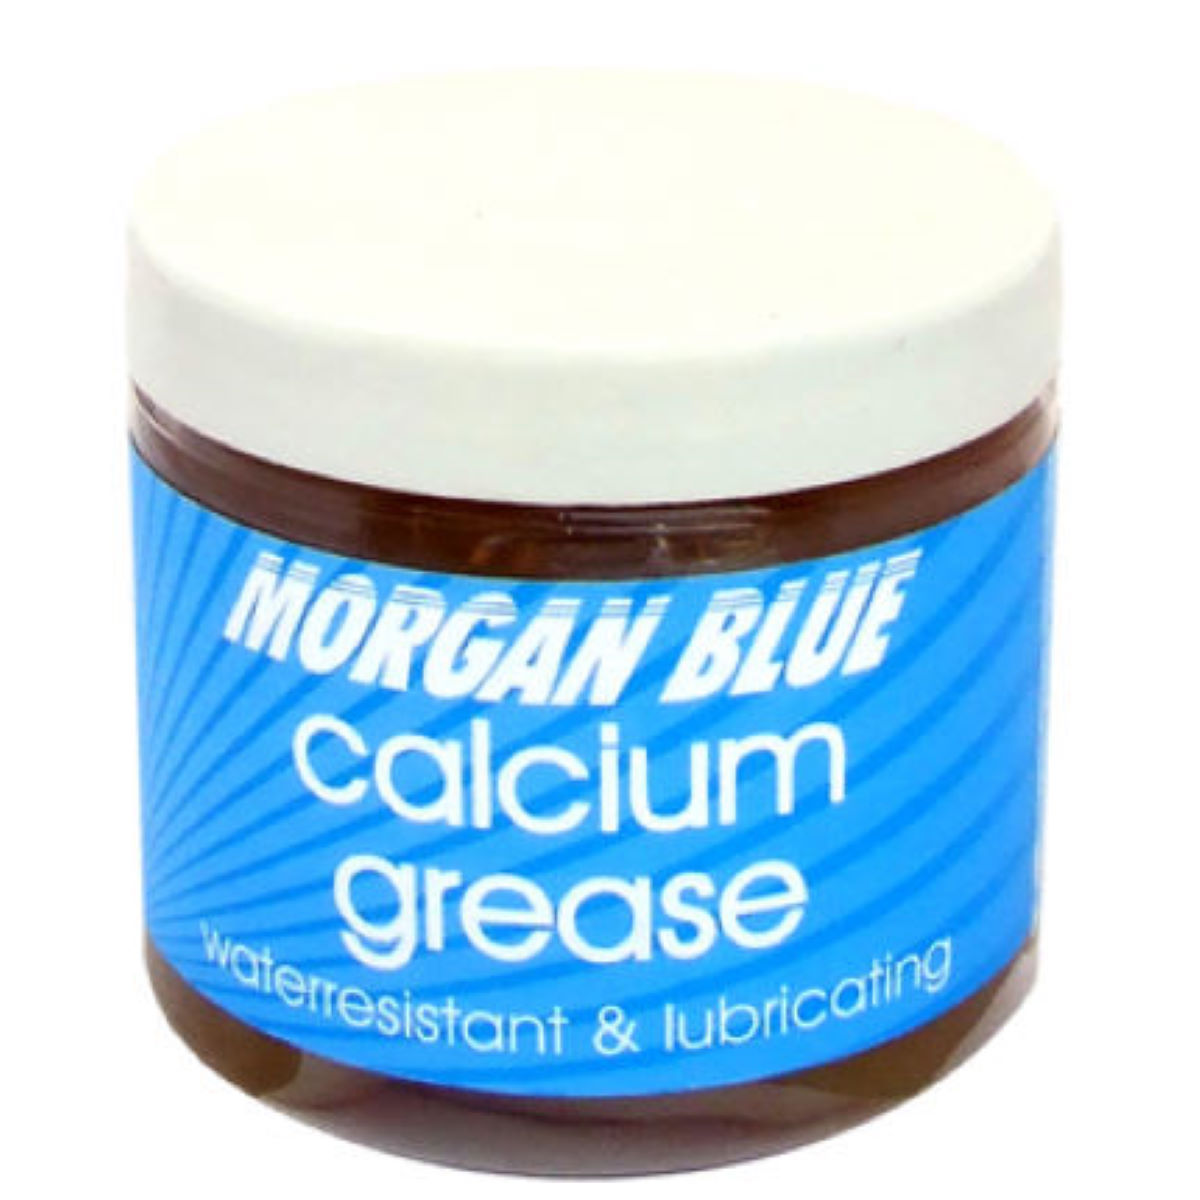 Grasa de calcio Morgan Blue Calcium Grease (200 ml) - Grasas